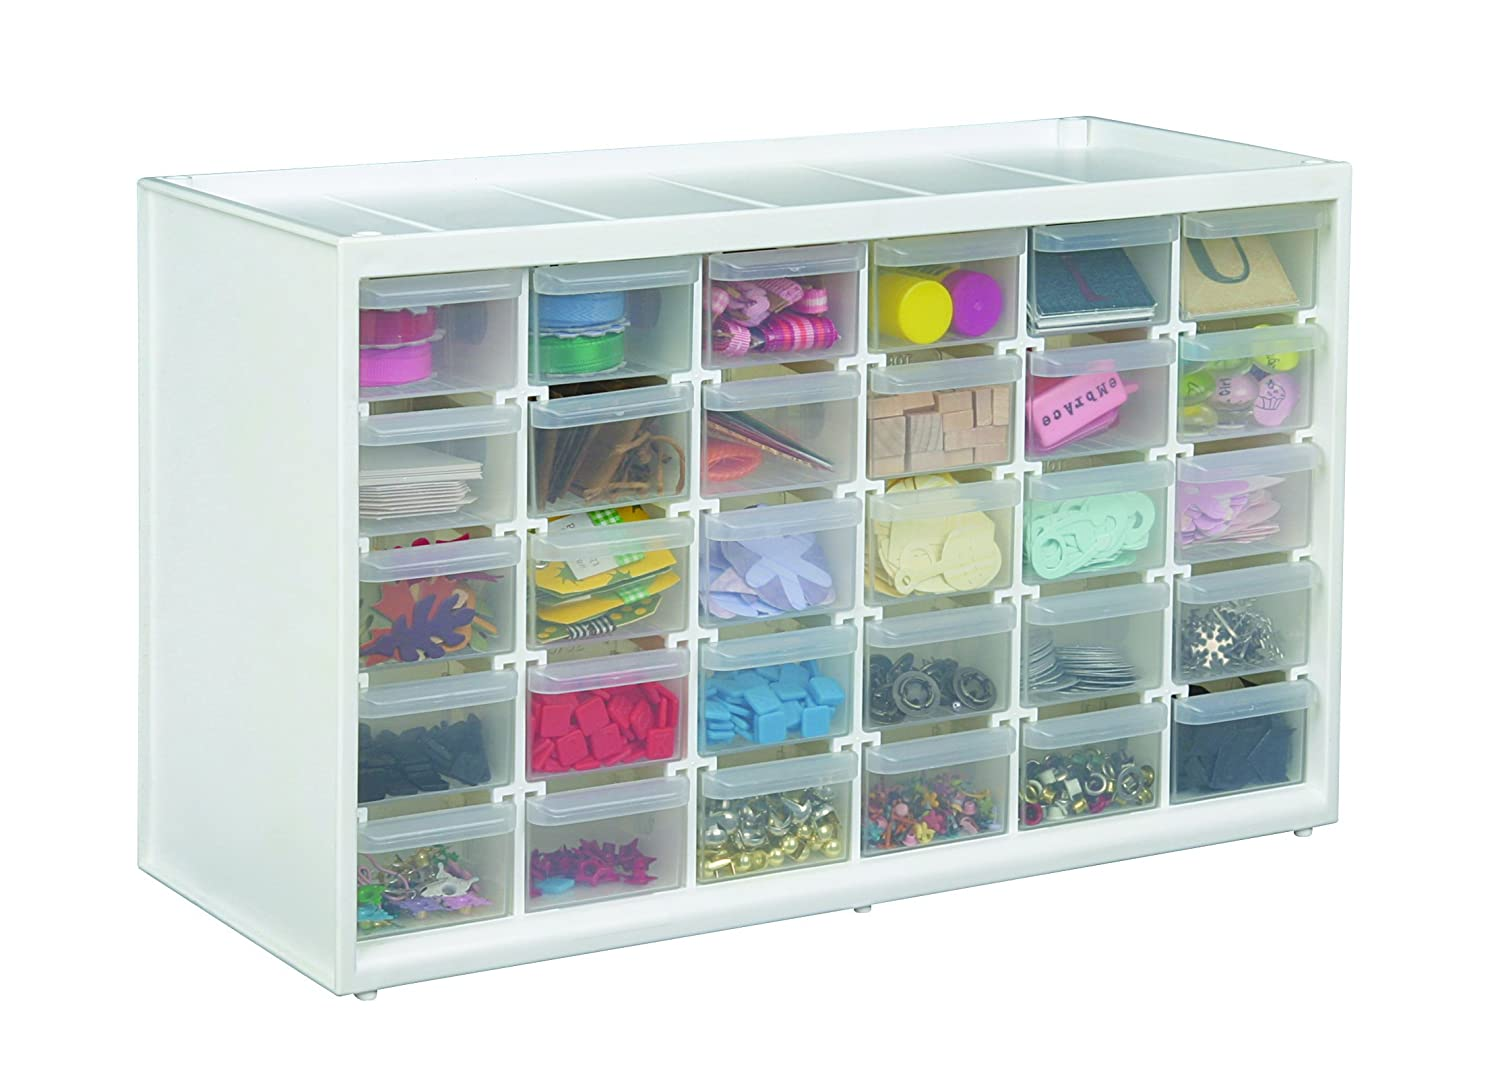 Amazon.com: ArtBin Store-In-Drawer Cabinet, 30 Art and Craft Supply ...